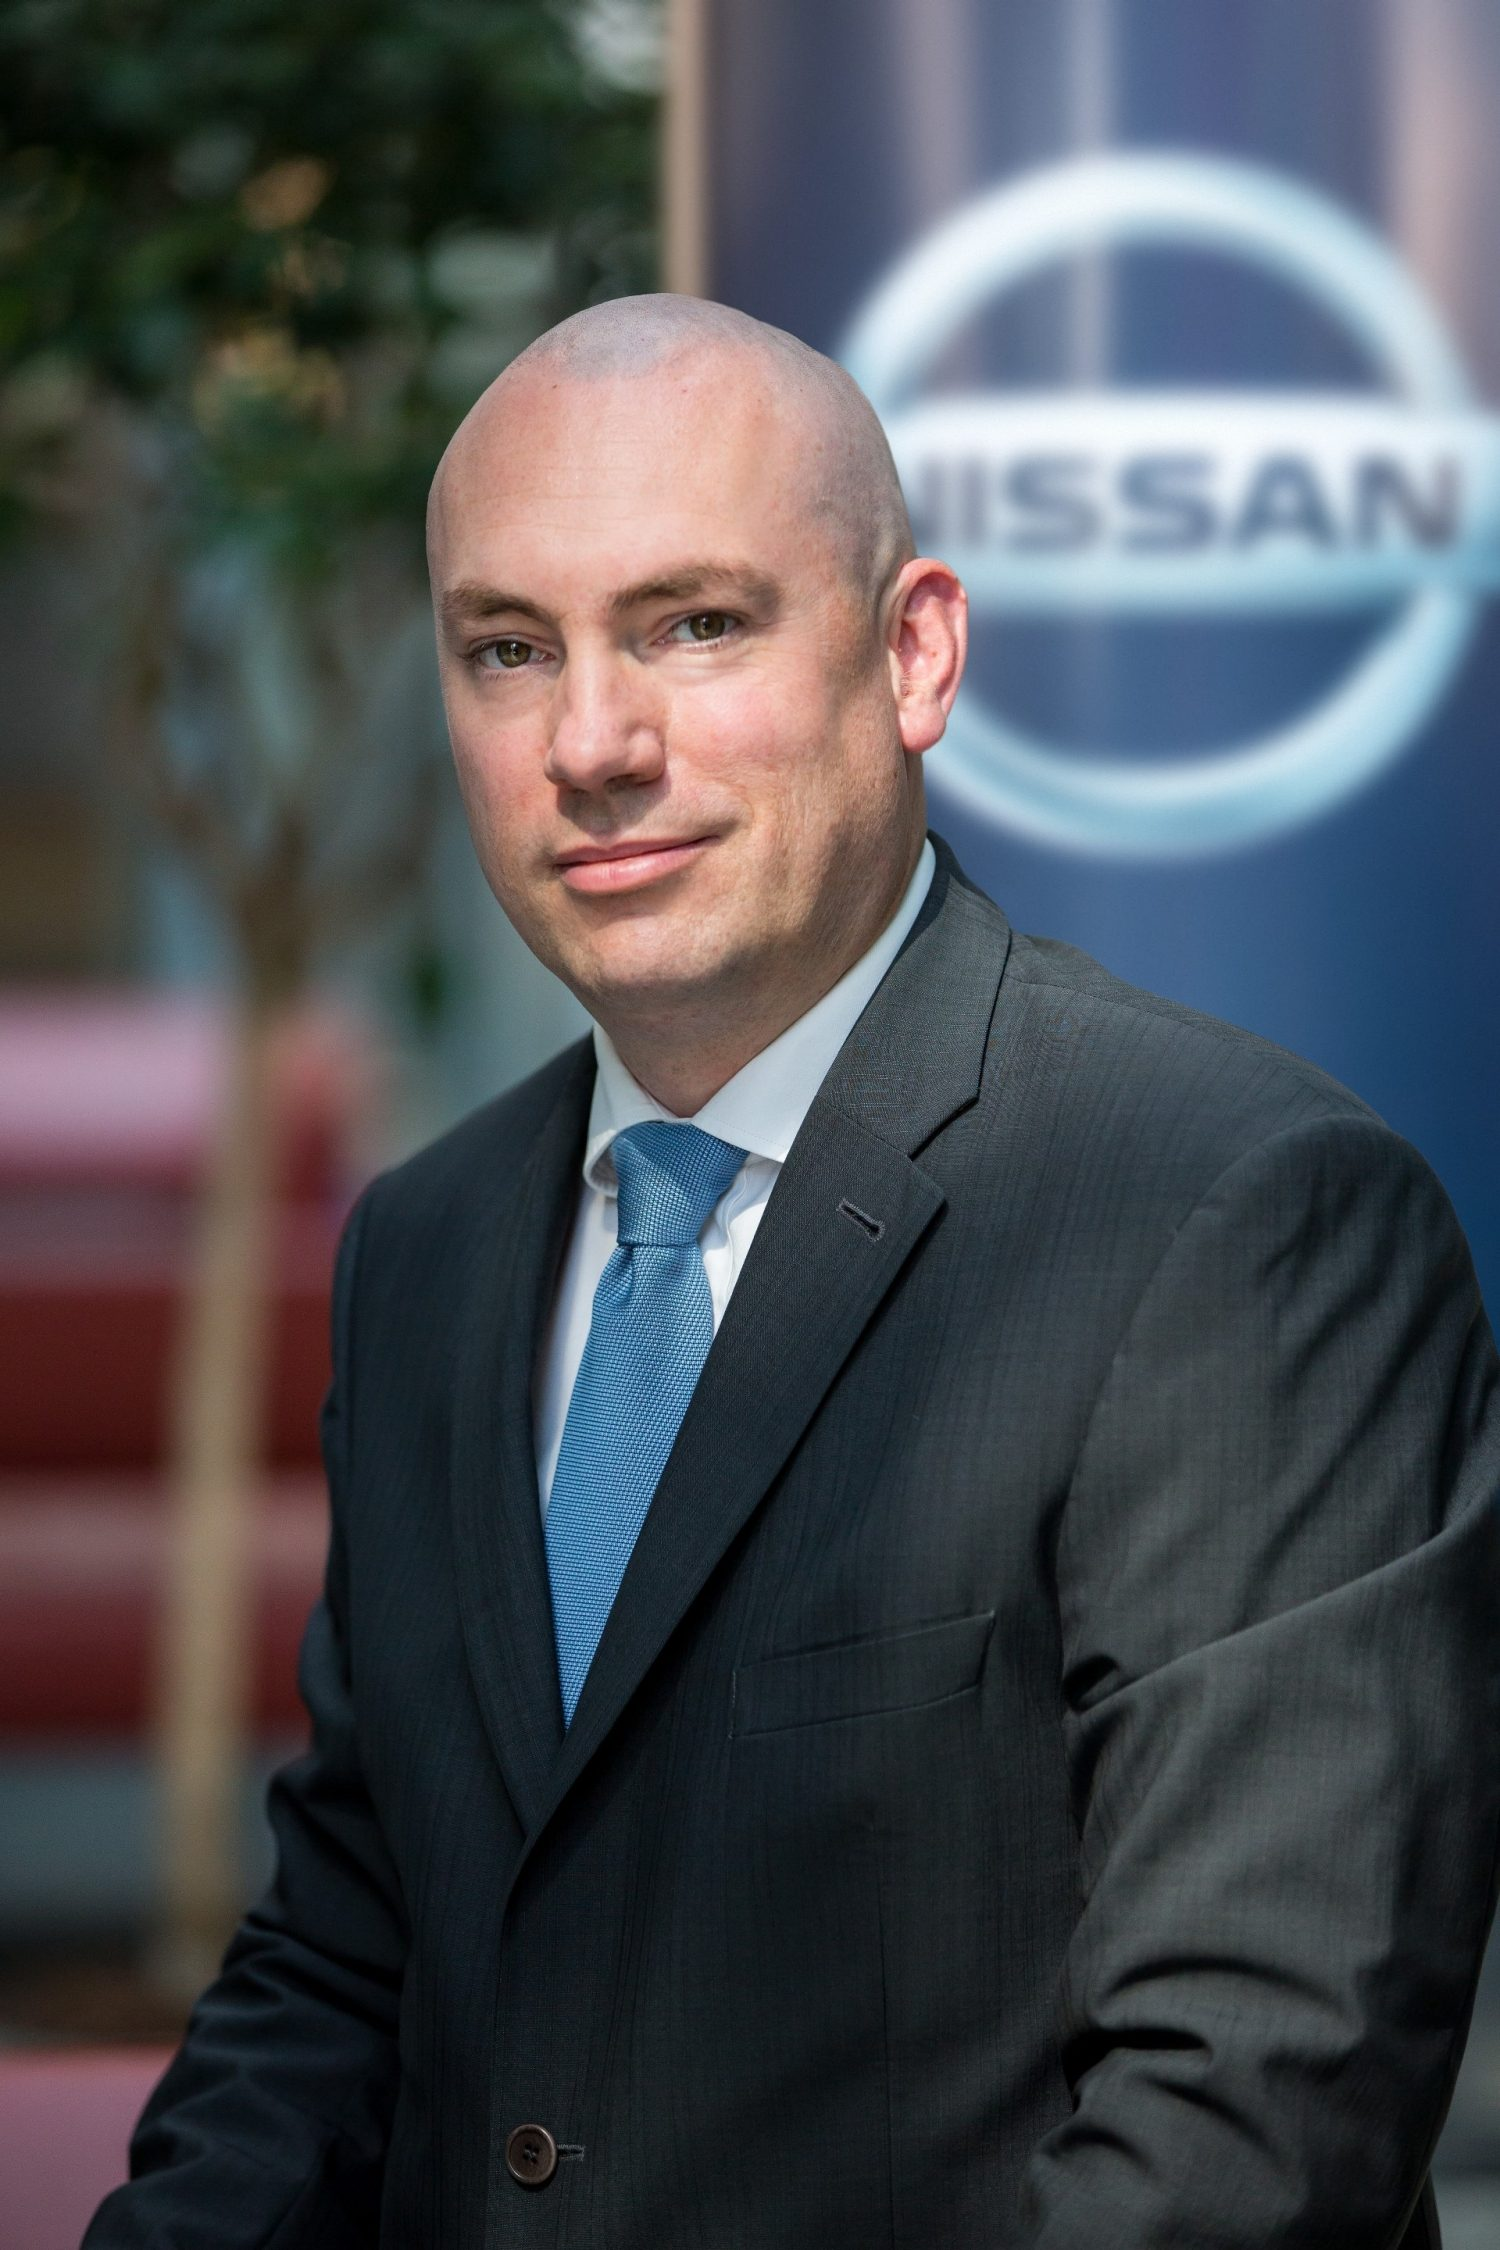 Mr. Antoine Barthes_President of Nissan Motor Thailand Co-Ltd